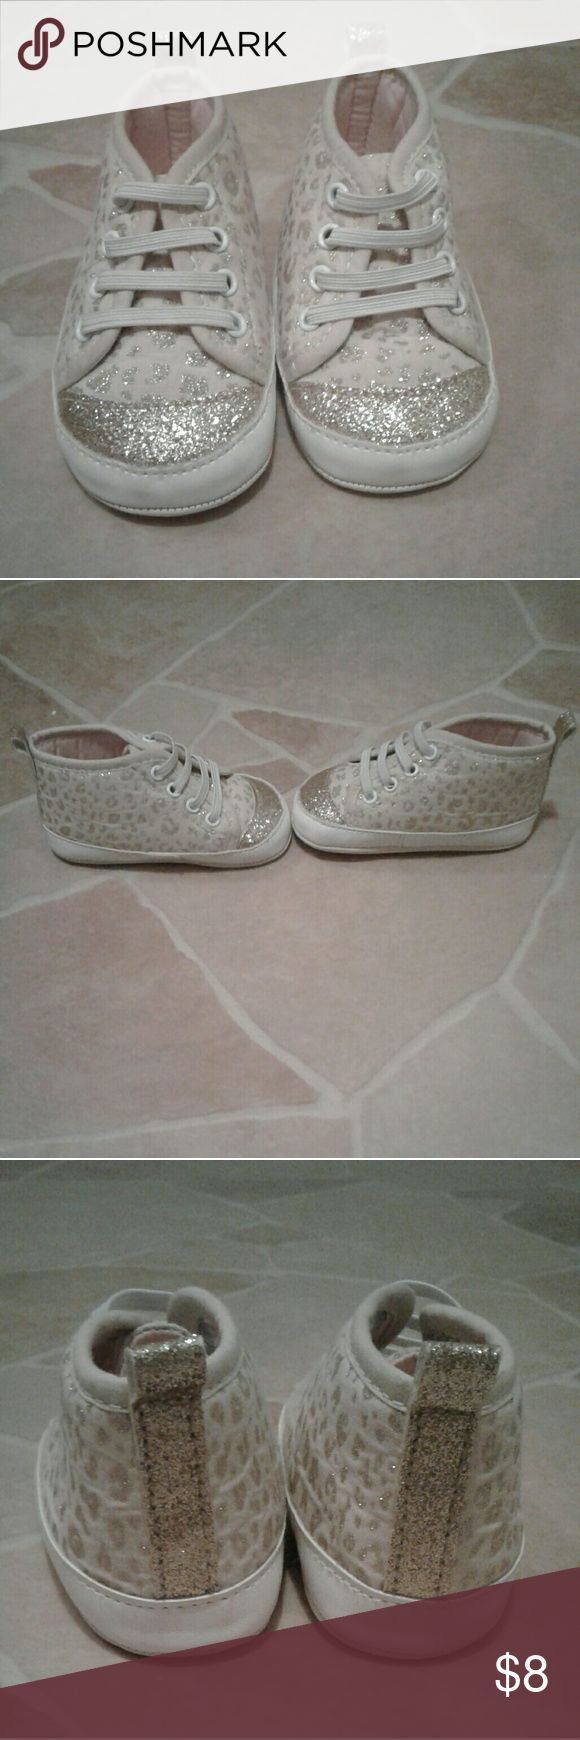 """JUST FOR YOU HIGH TOP GLITTER CHEETAH SHOES Excellent condition worn a couple of times. These high top shoes are adorable. The entire shoe is glitter cheetah print all the way to the glitter toe of the shoes. The """"shoe laces"""" are elastic so it's very easy to slide on or off! These are a size 3- 6 month in baby. Just For You Shoes Baby & Walker"""